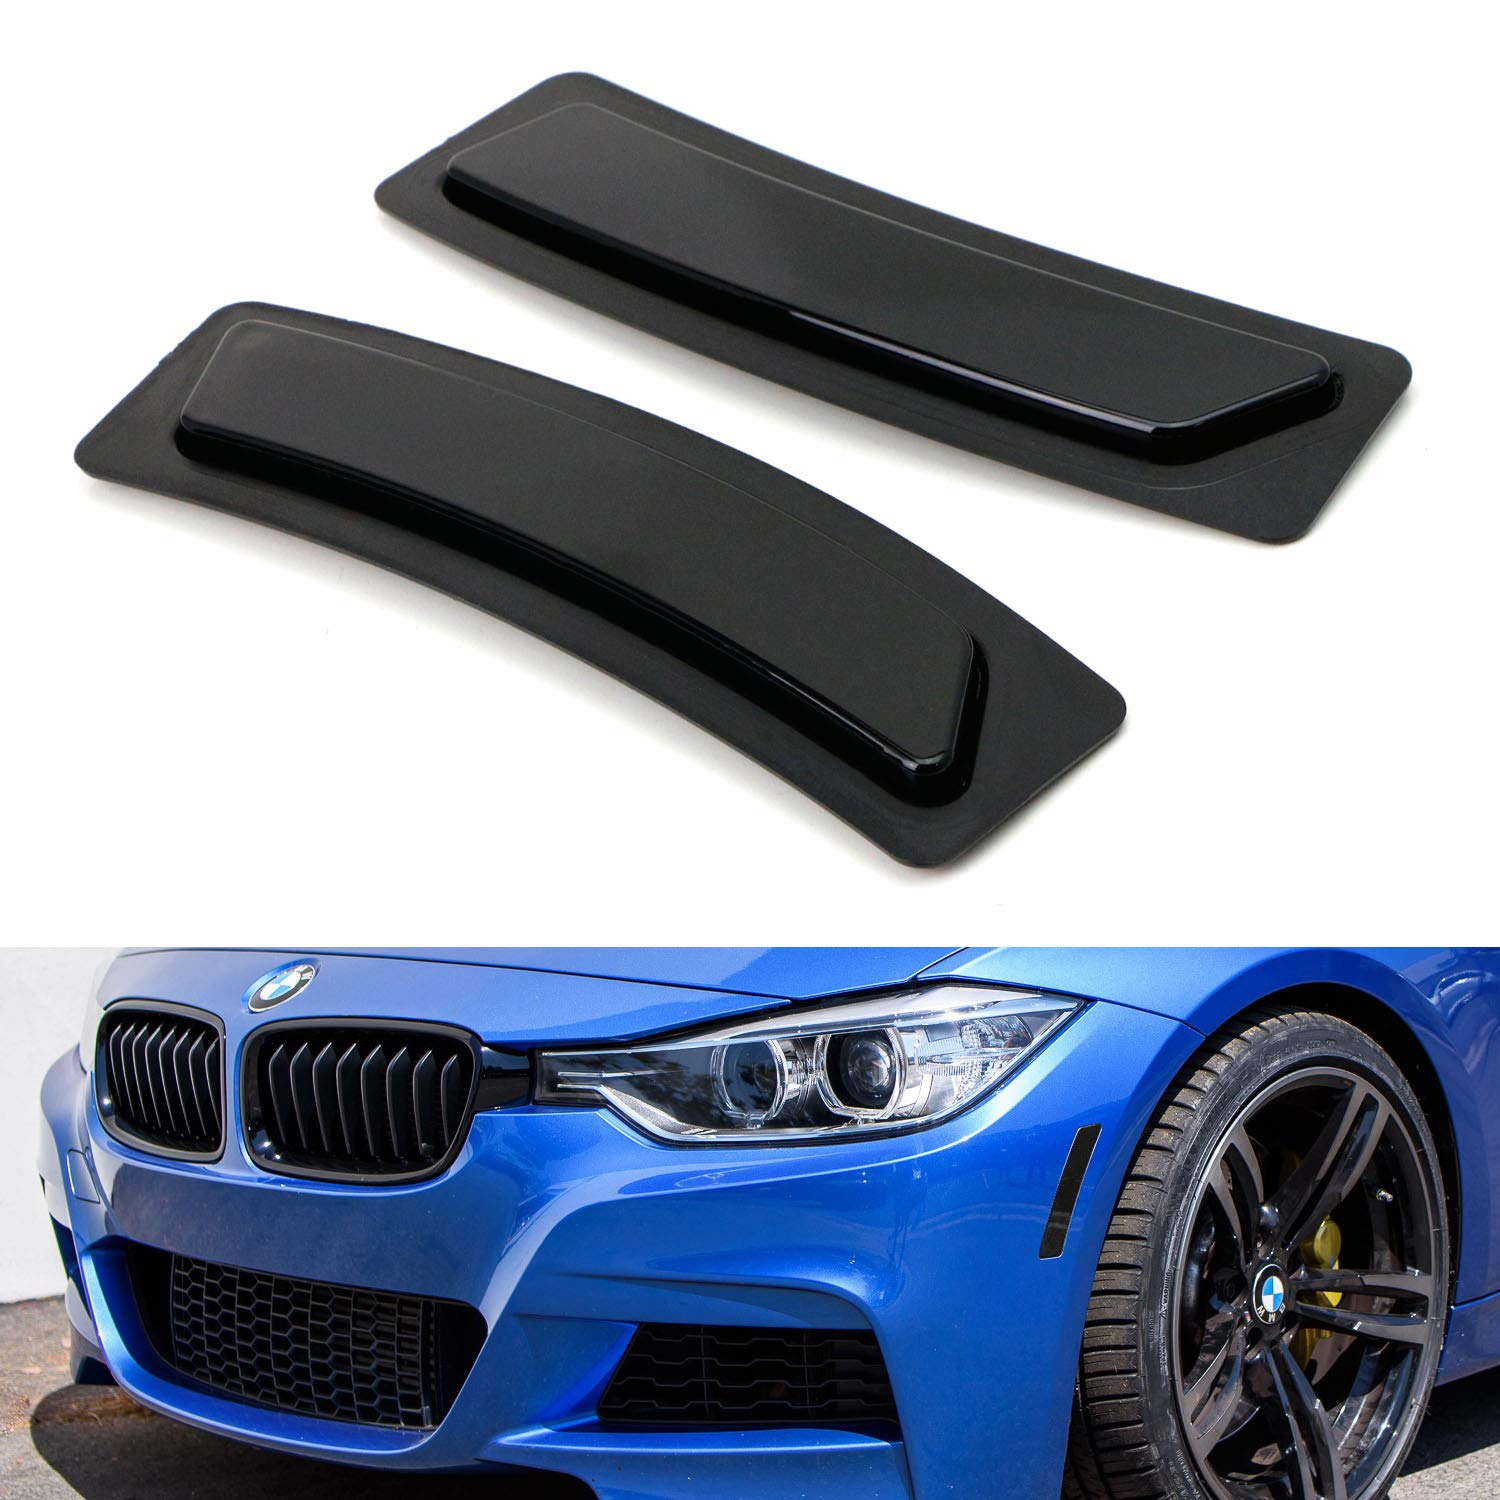 iJDMTOY Glossy Black Smoked Lens Front Bumper Side Markers For 2016-2018 BMW F30 F31 LCI 3 Series 320i 340i, F32 4 Series 420i 428i 435i 440i, Replace OEM Amber Reflector Assy